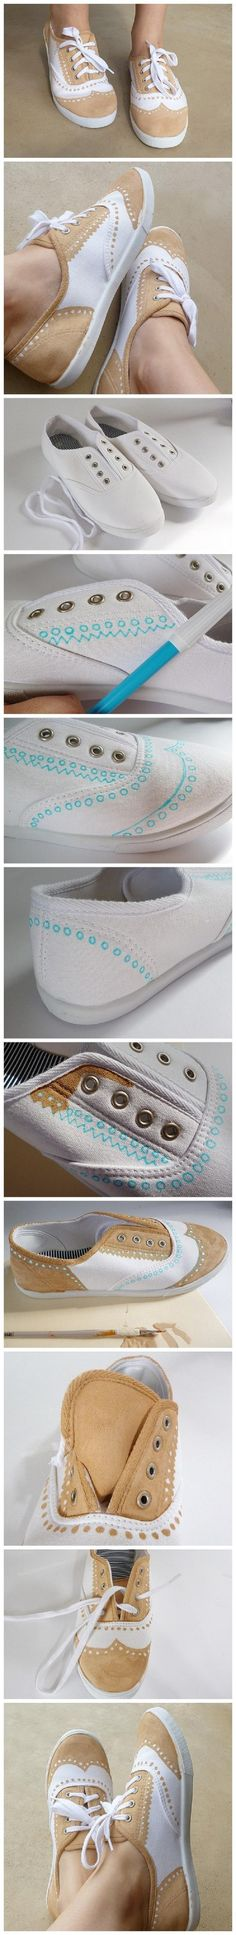 Really cool DIY Shoes Remodeling. 10 Fantastic DIY Female shoes. Love the idea!!